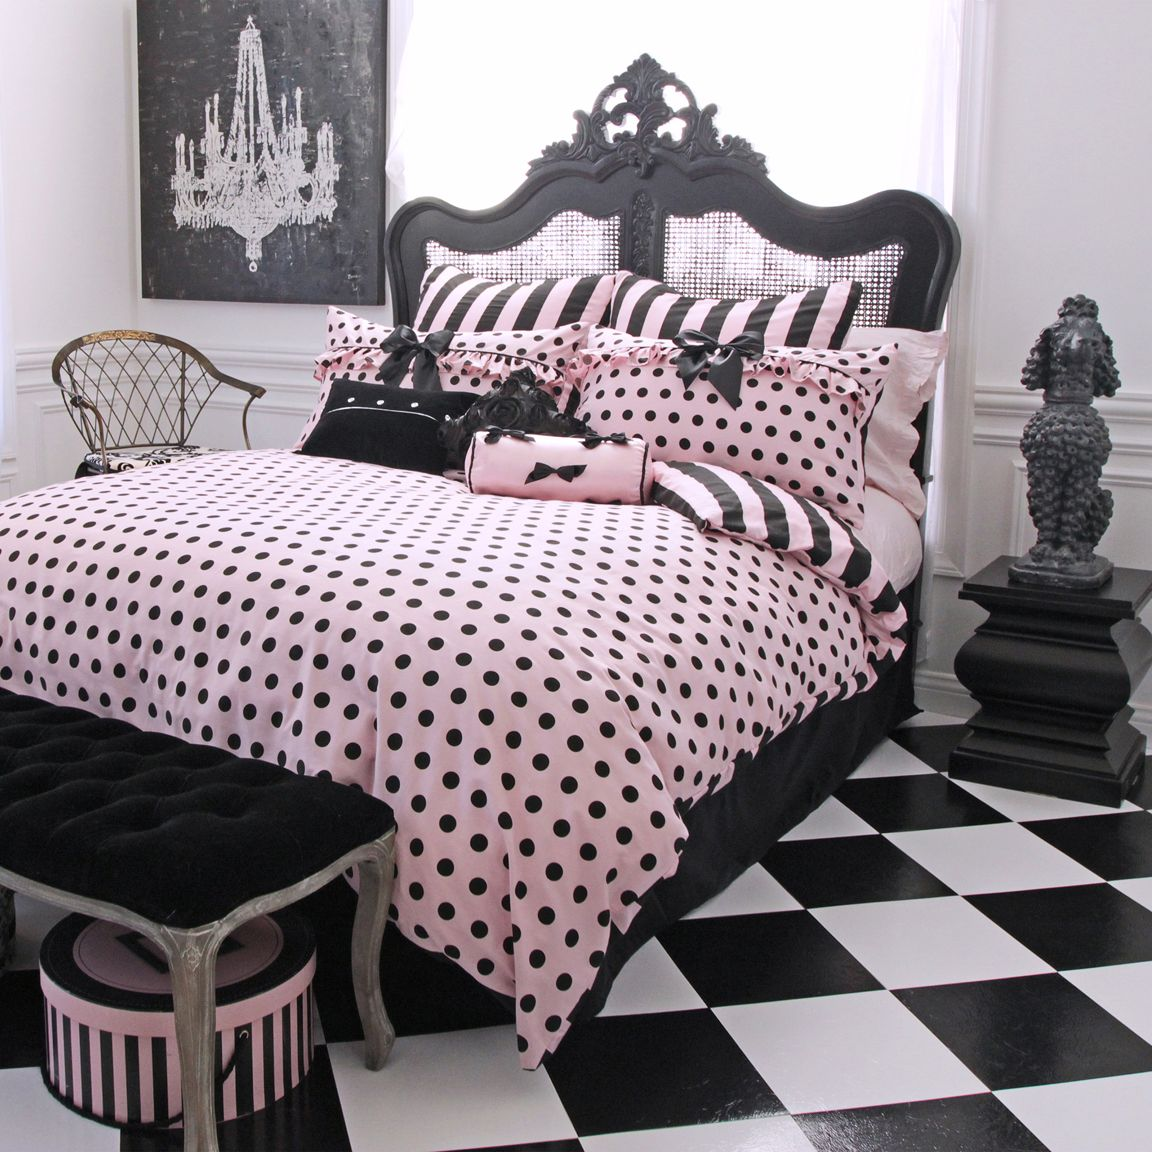 Pin by Christina Avila on Bedding | Pink bedroom design ...